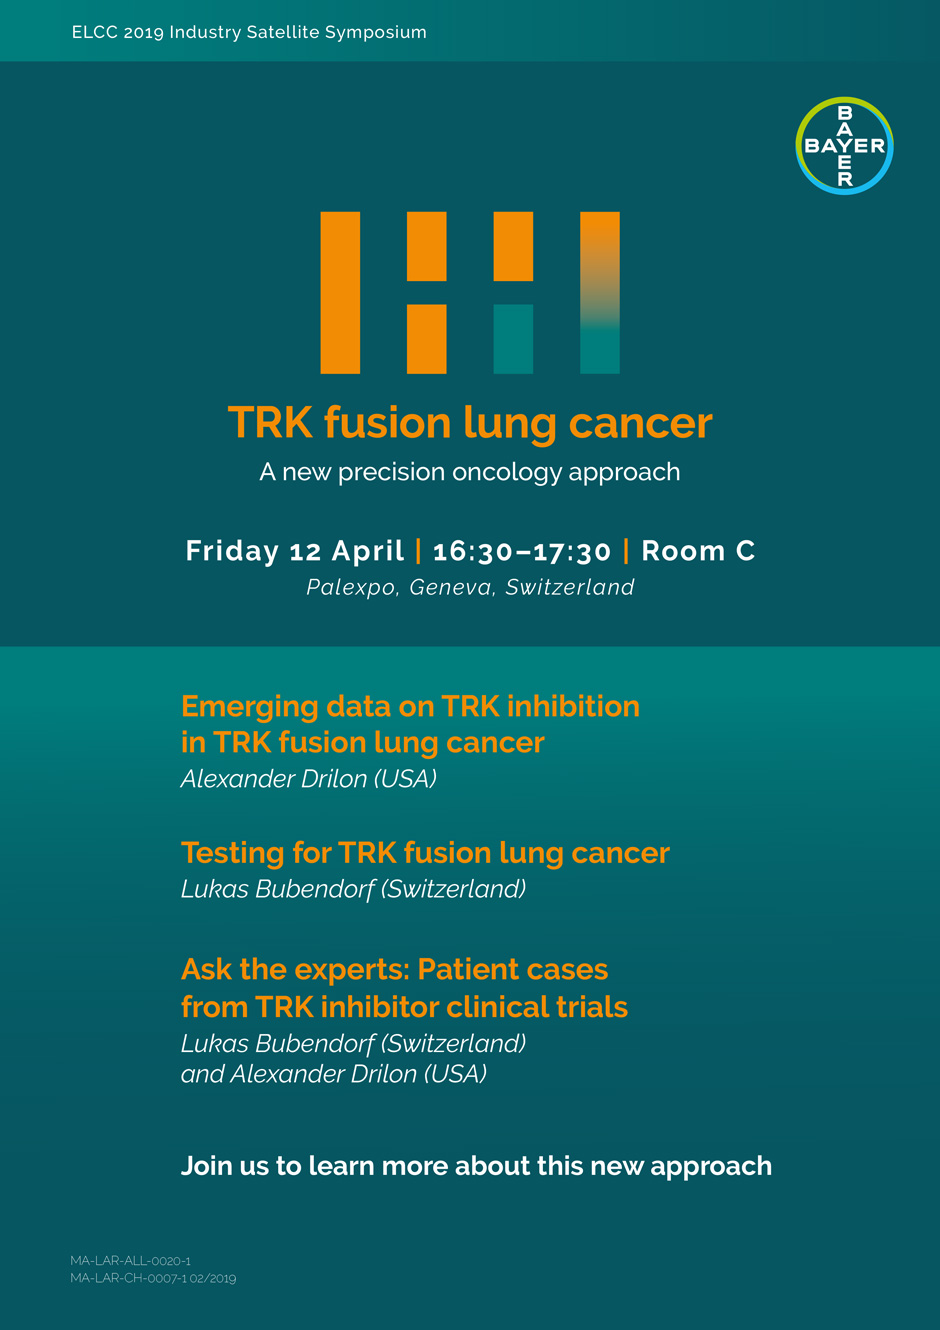 TRK Fusion Lung Cancer: A New Precision Oncology Approach